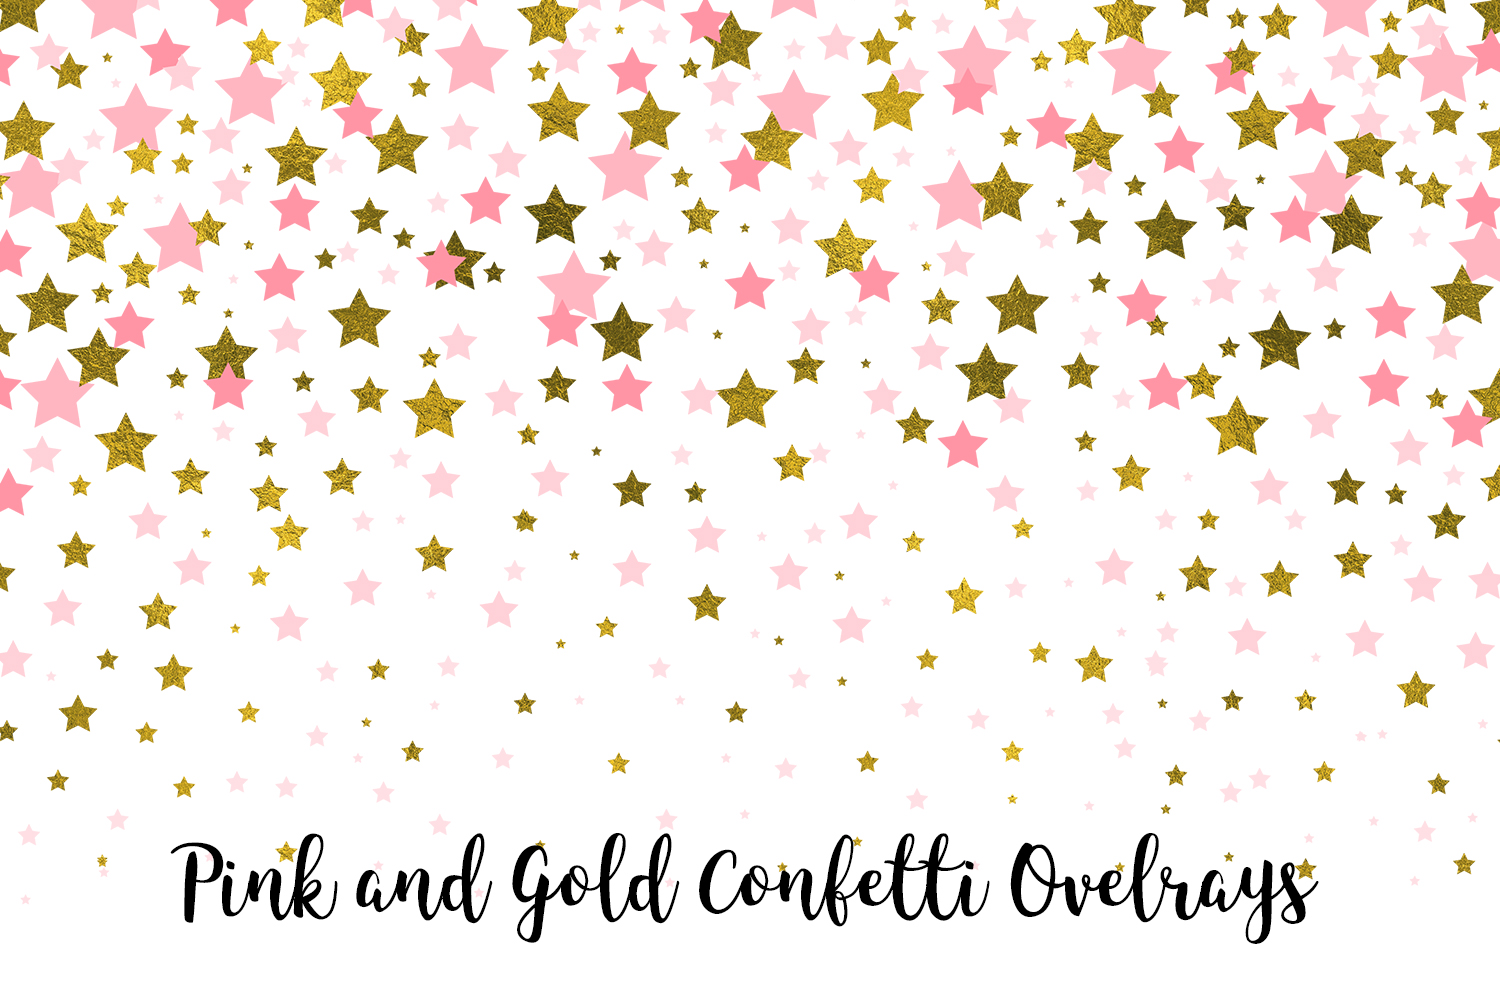 Pink and Gold Confetti Overlays, Transparent PNGs example image 2